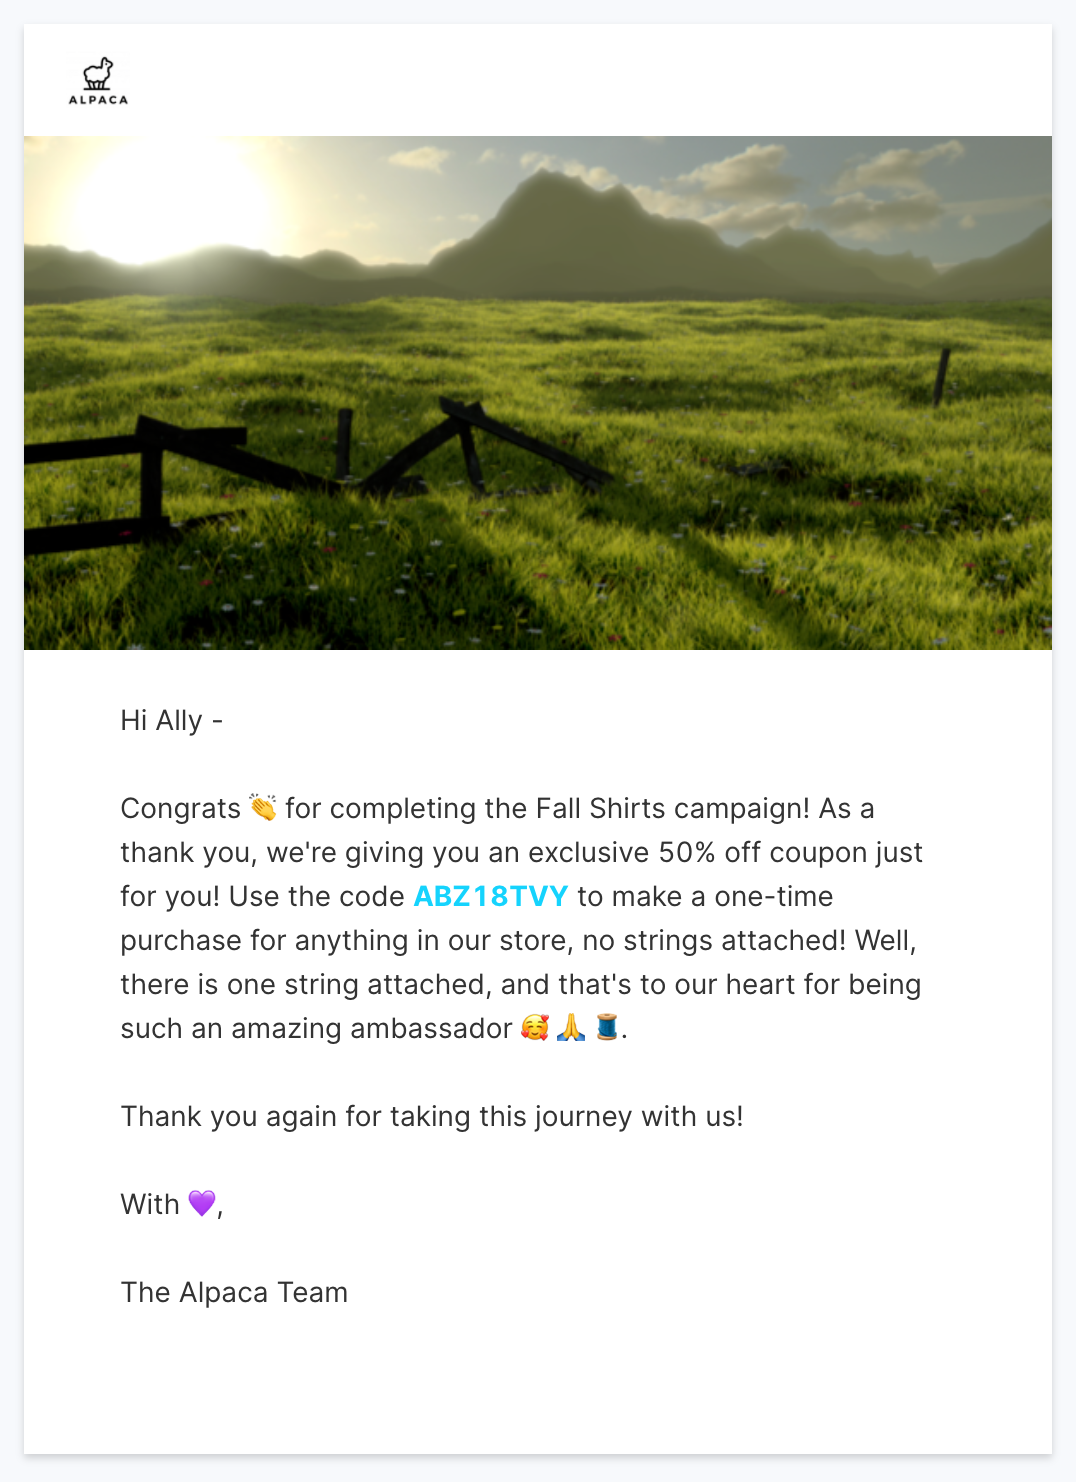 Reinforce your appreciation with instant rewards for ambassadors and inluencers